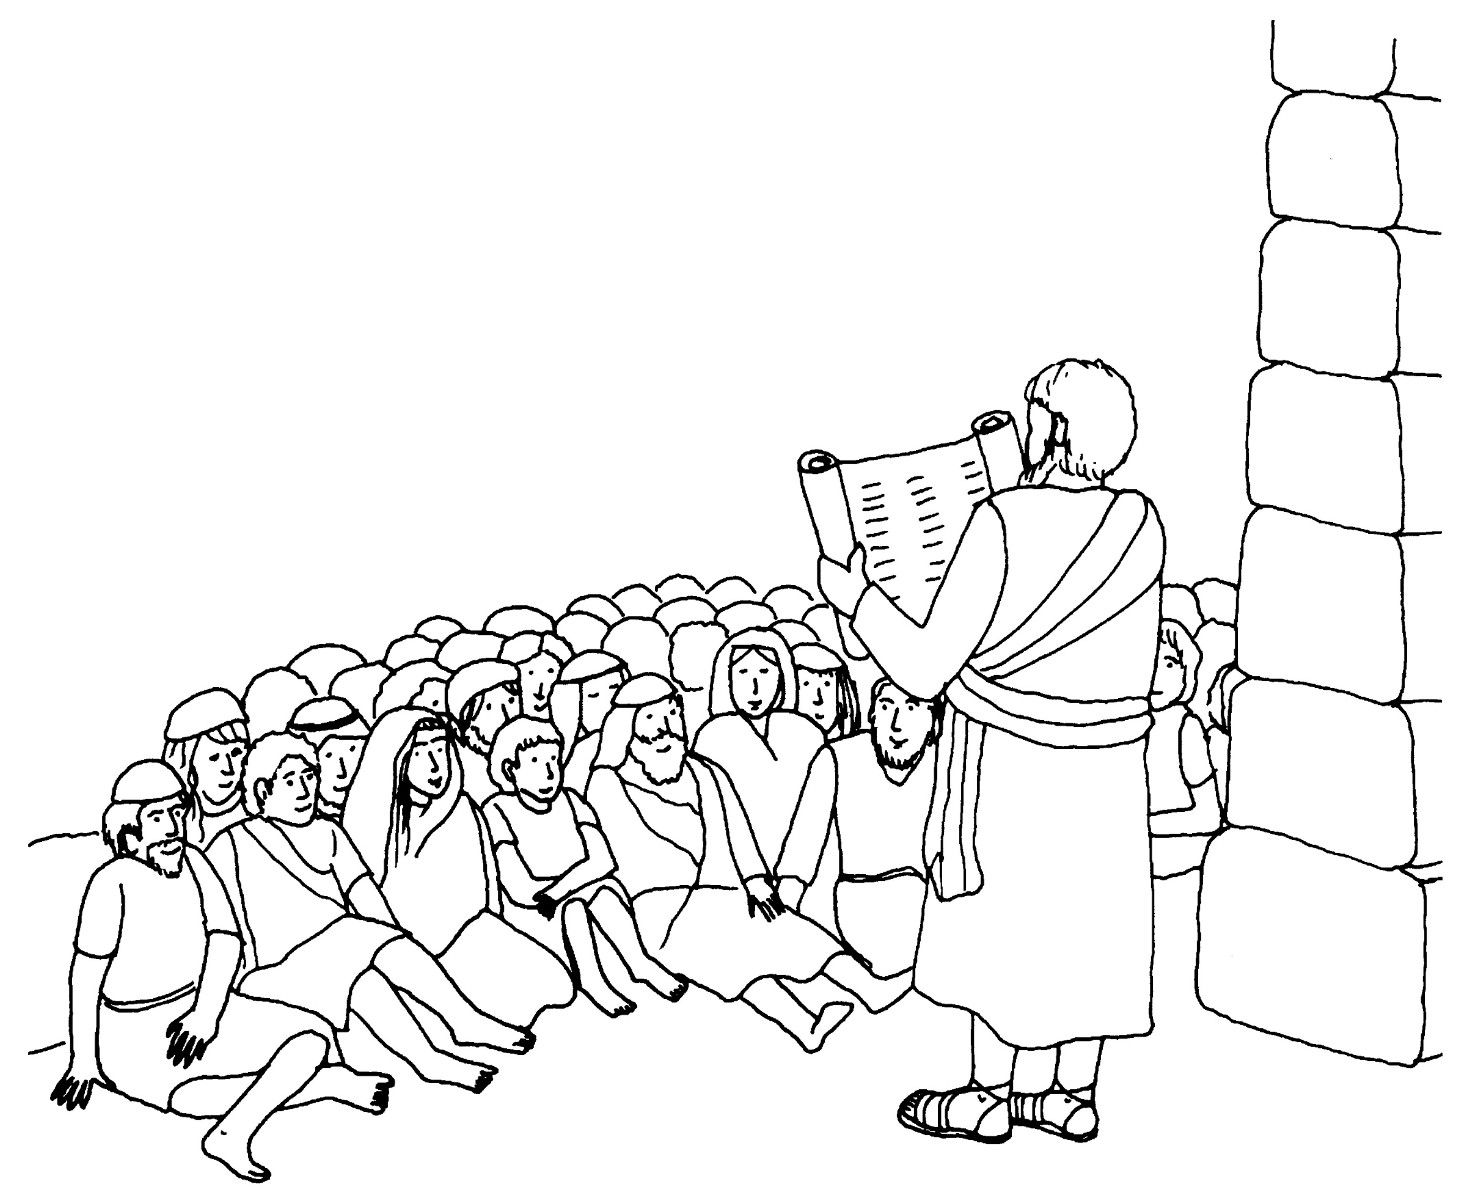 nehemiah coloring page 30 best bible prophets in the ot images on pinterest page nehemiah coloring